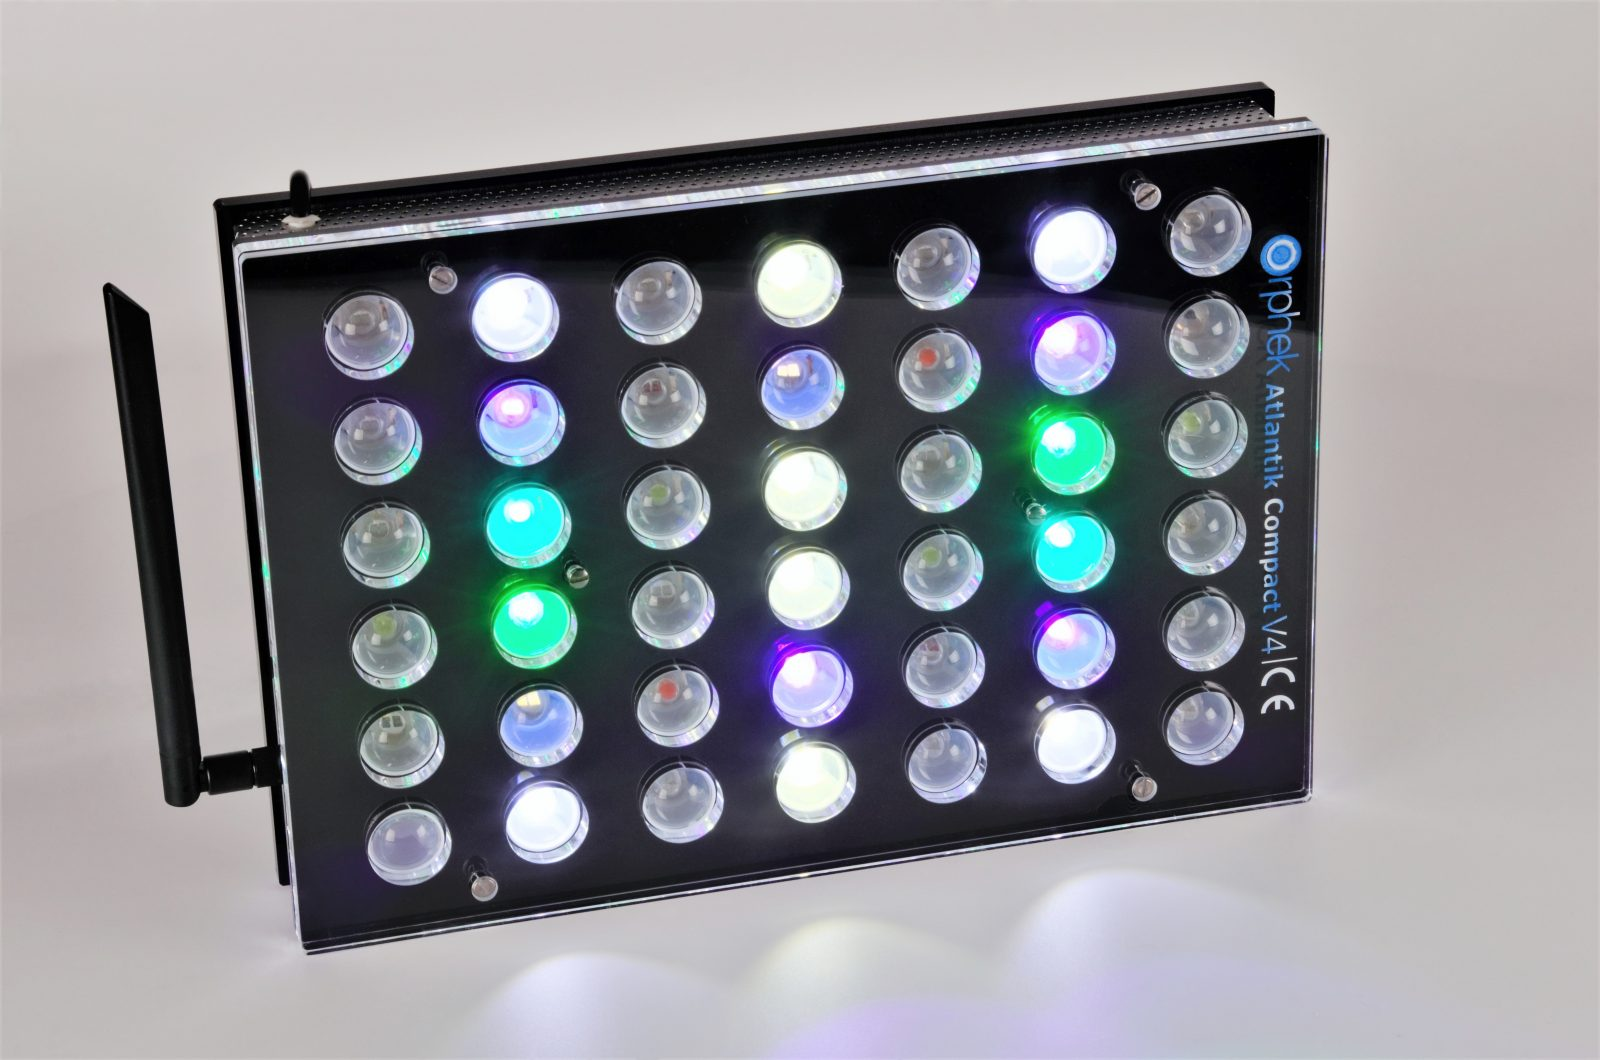 Orphek-Aquarium-LED-Lighting-Atlantik -Compact-V4-light -on -channel 1 + 3